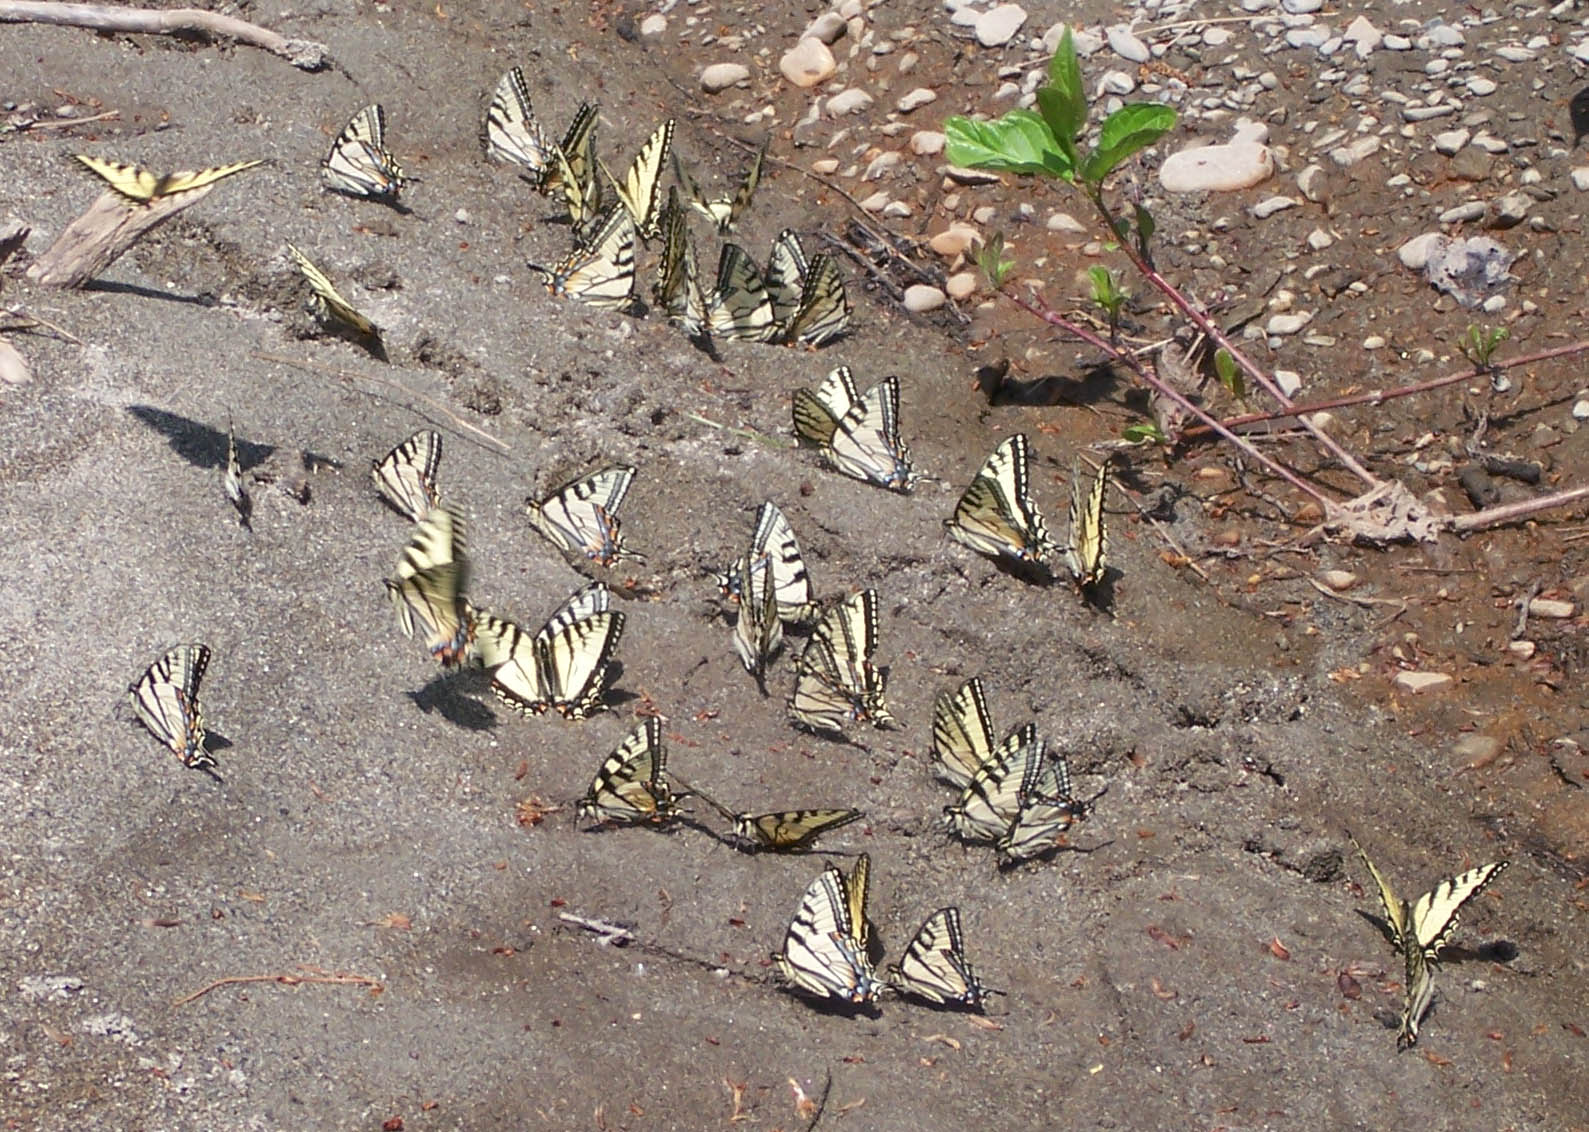 The Tiger Swallowtails are emerging, and there were flocks of them on ...